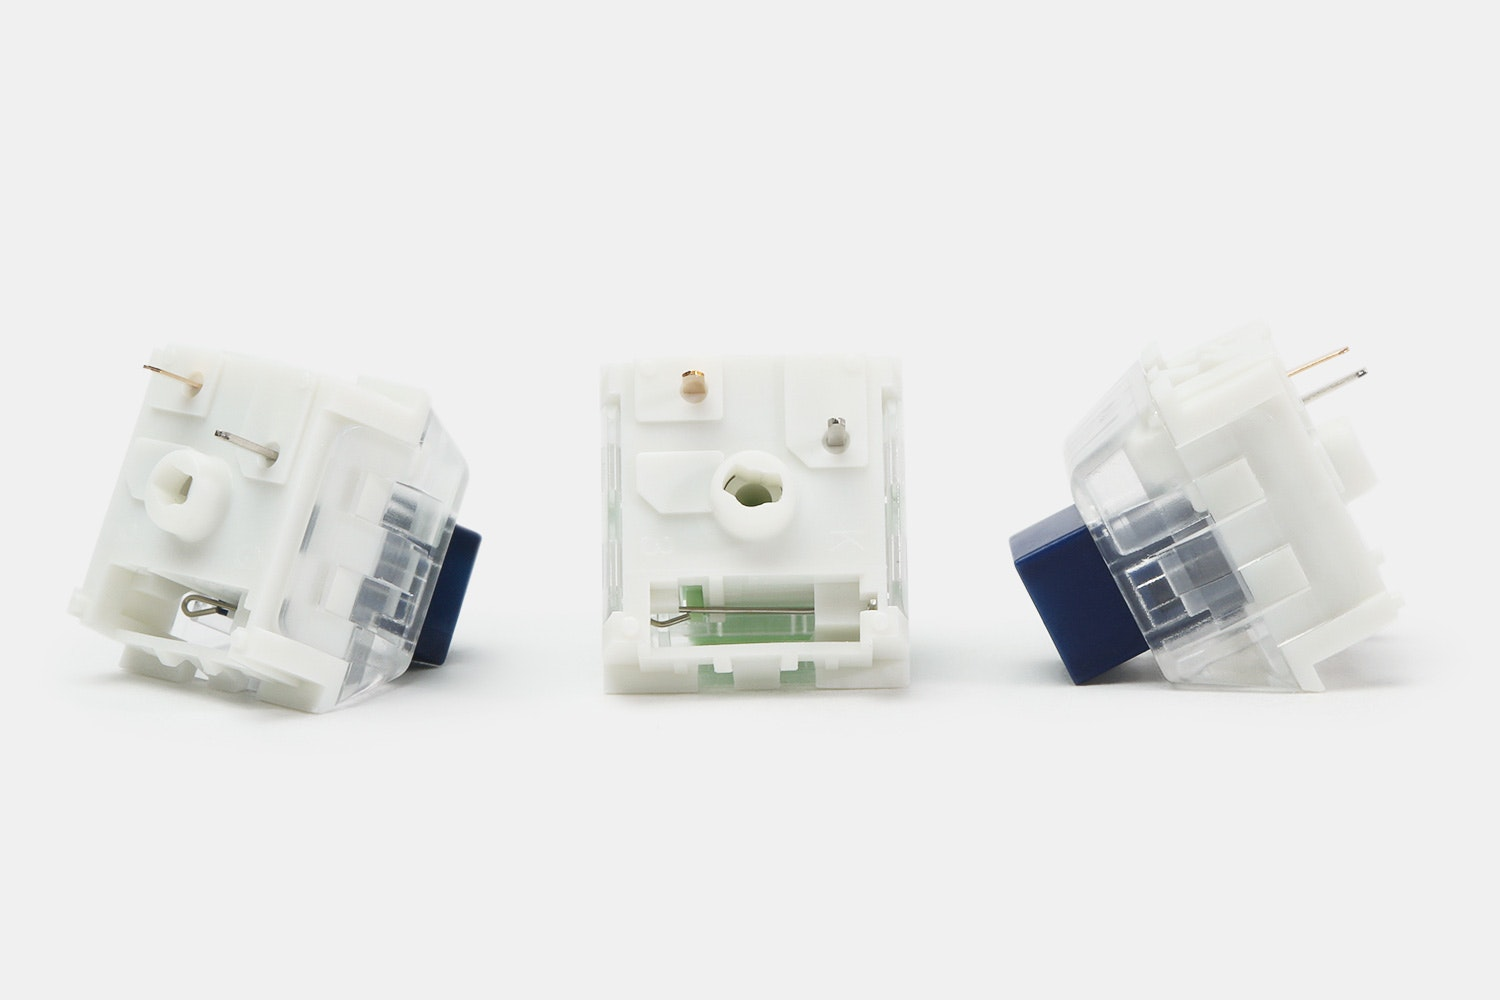 NovelKeys x Kailh BOX Switches